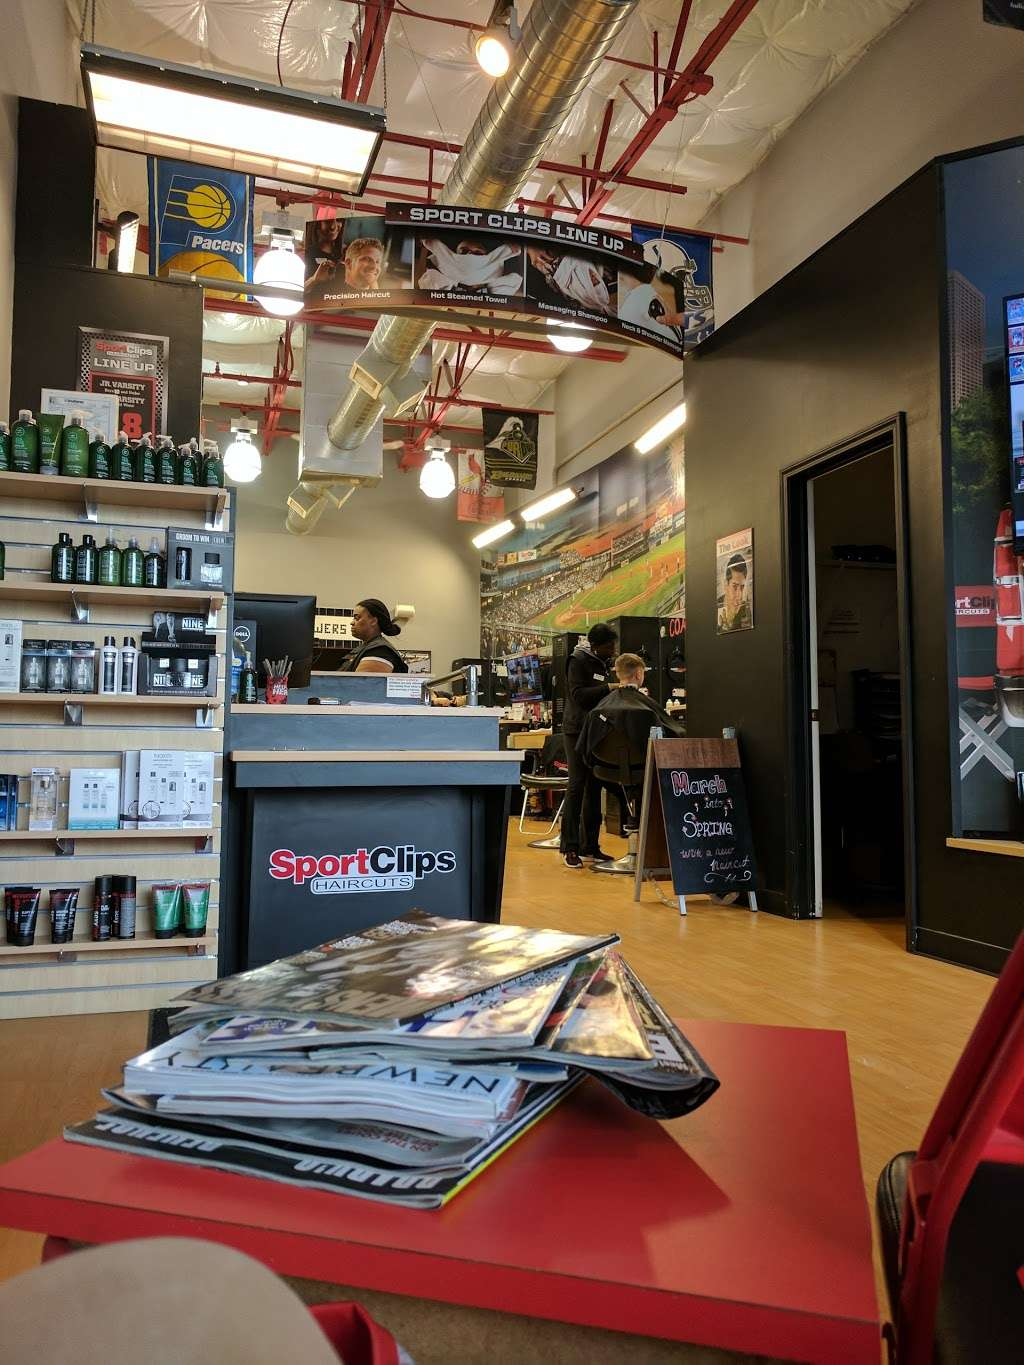 Sport Clips Haircuts of German Church Shops - hair care  | Photo 2 of 10 | Address: 10935 E Washington St, Indianapolis, IN 46229, USA | Phone: (317) 897-9674